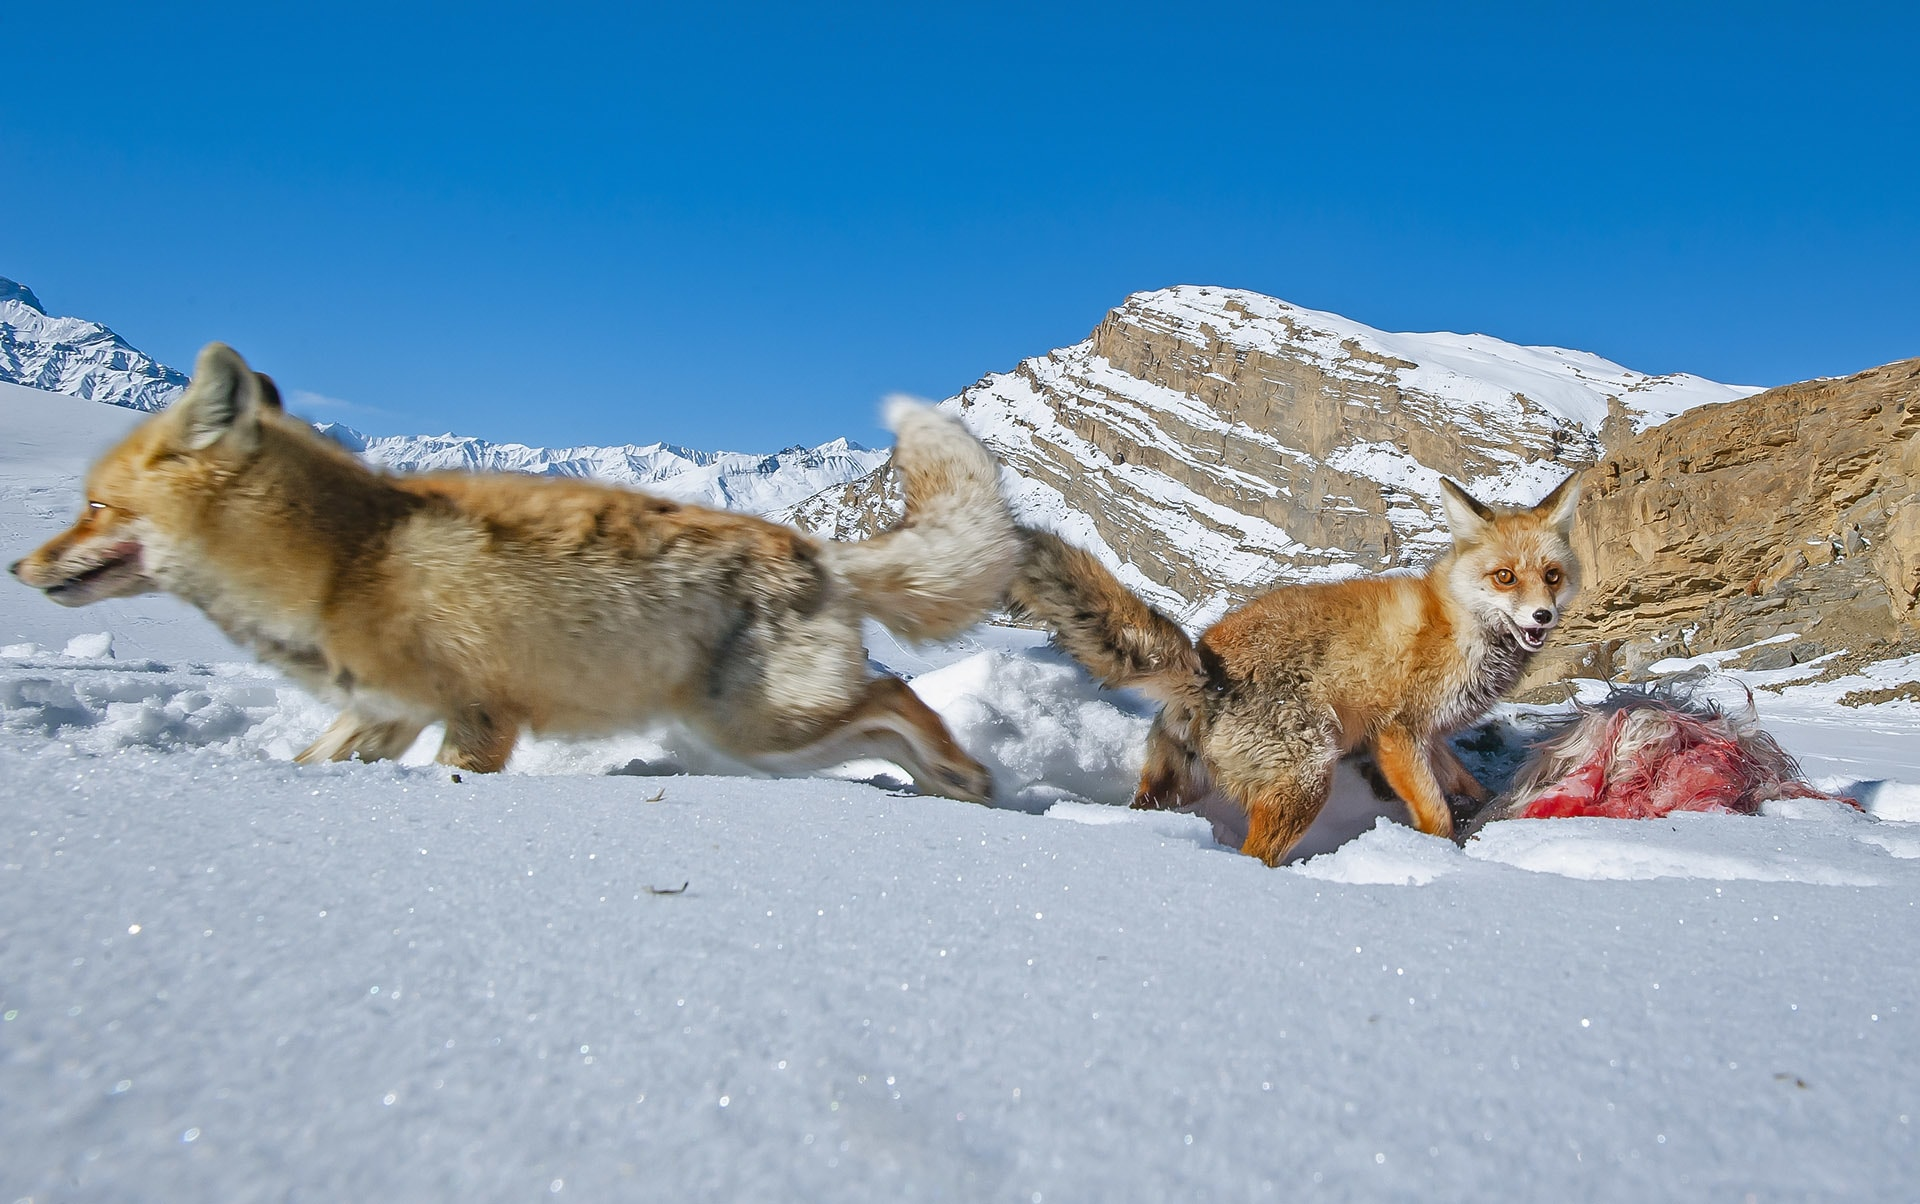 """Competition can sometimes be fierce between foxes, especially in the winter months, when nutrition is hard to come by. This image was taken in Langza village, Spiti Valley, Himachal Pradesh, where """"two foxes were fighting over a piece of fresh sheep skin,"""" says photographer Dhritiman Mukherjee."""